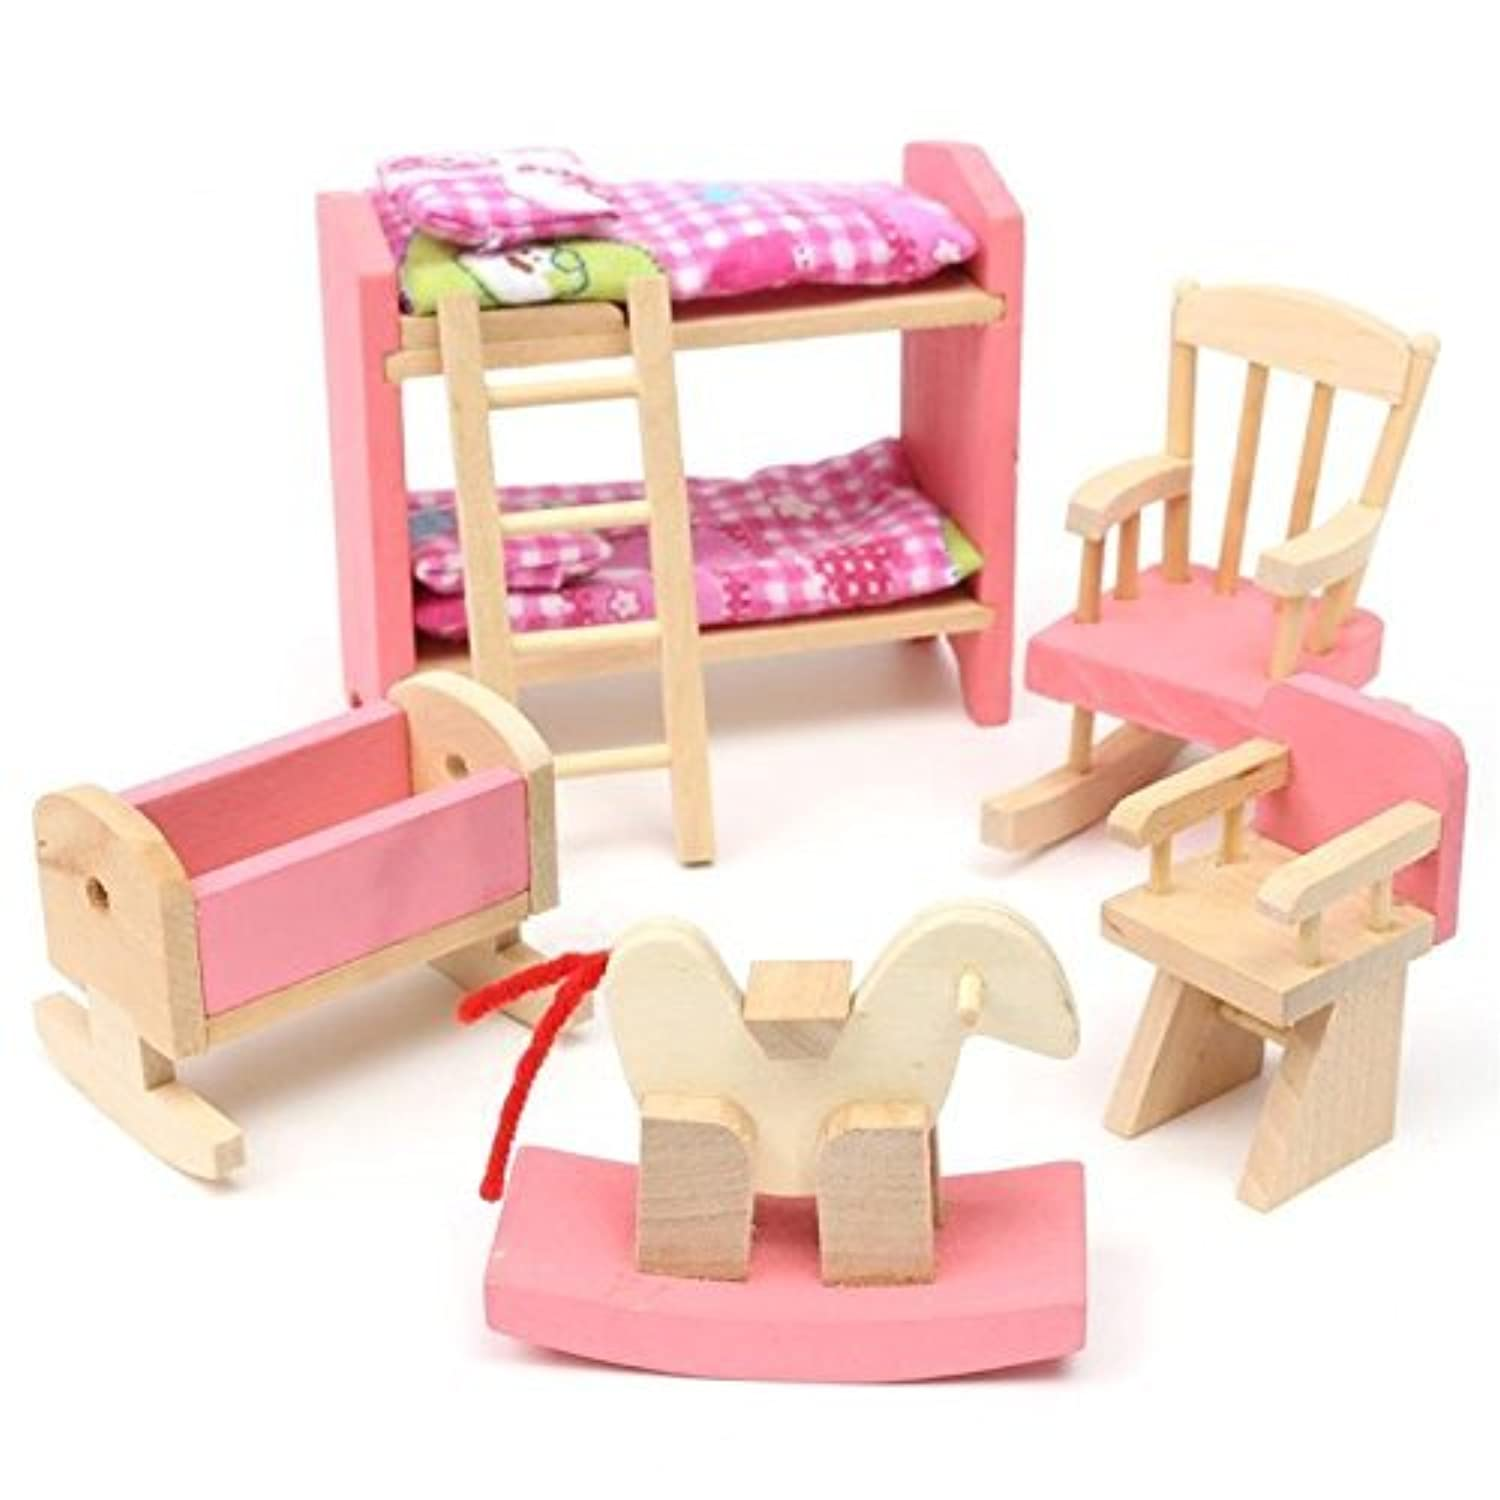 Kids Bedroom Furniture Kids Wooden Toys Online: Kids House Play Wooden Children Doll Houses Toys(Baby